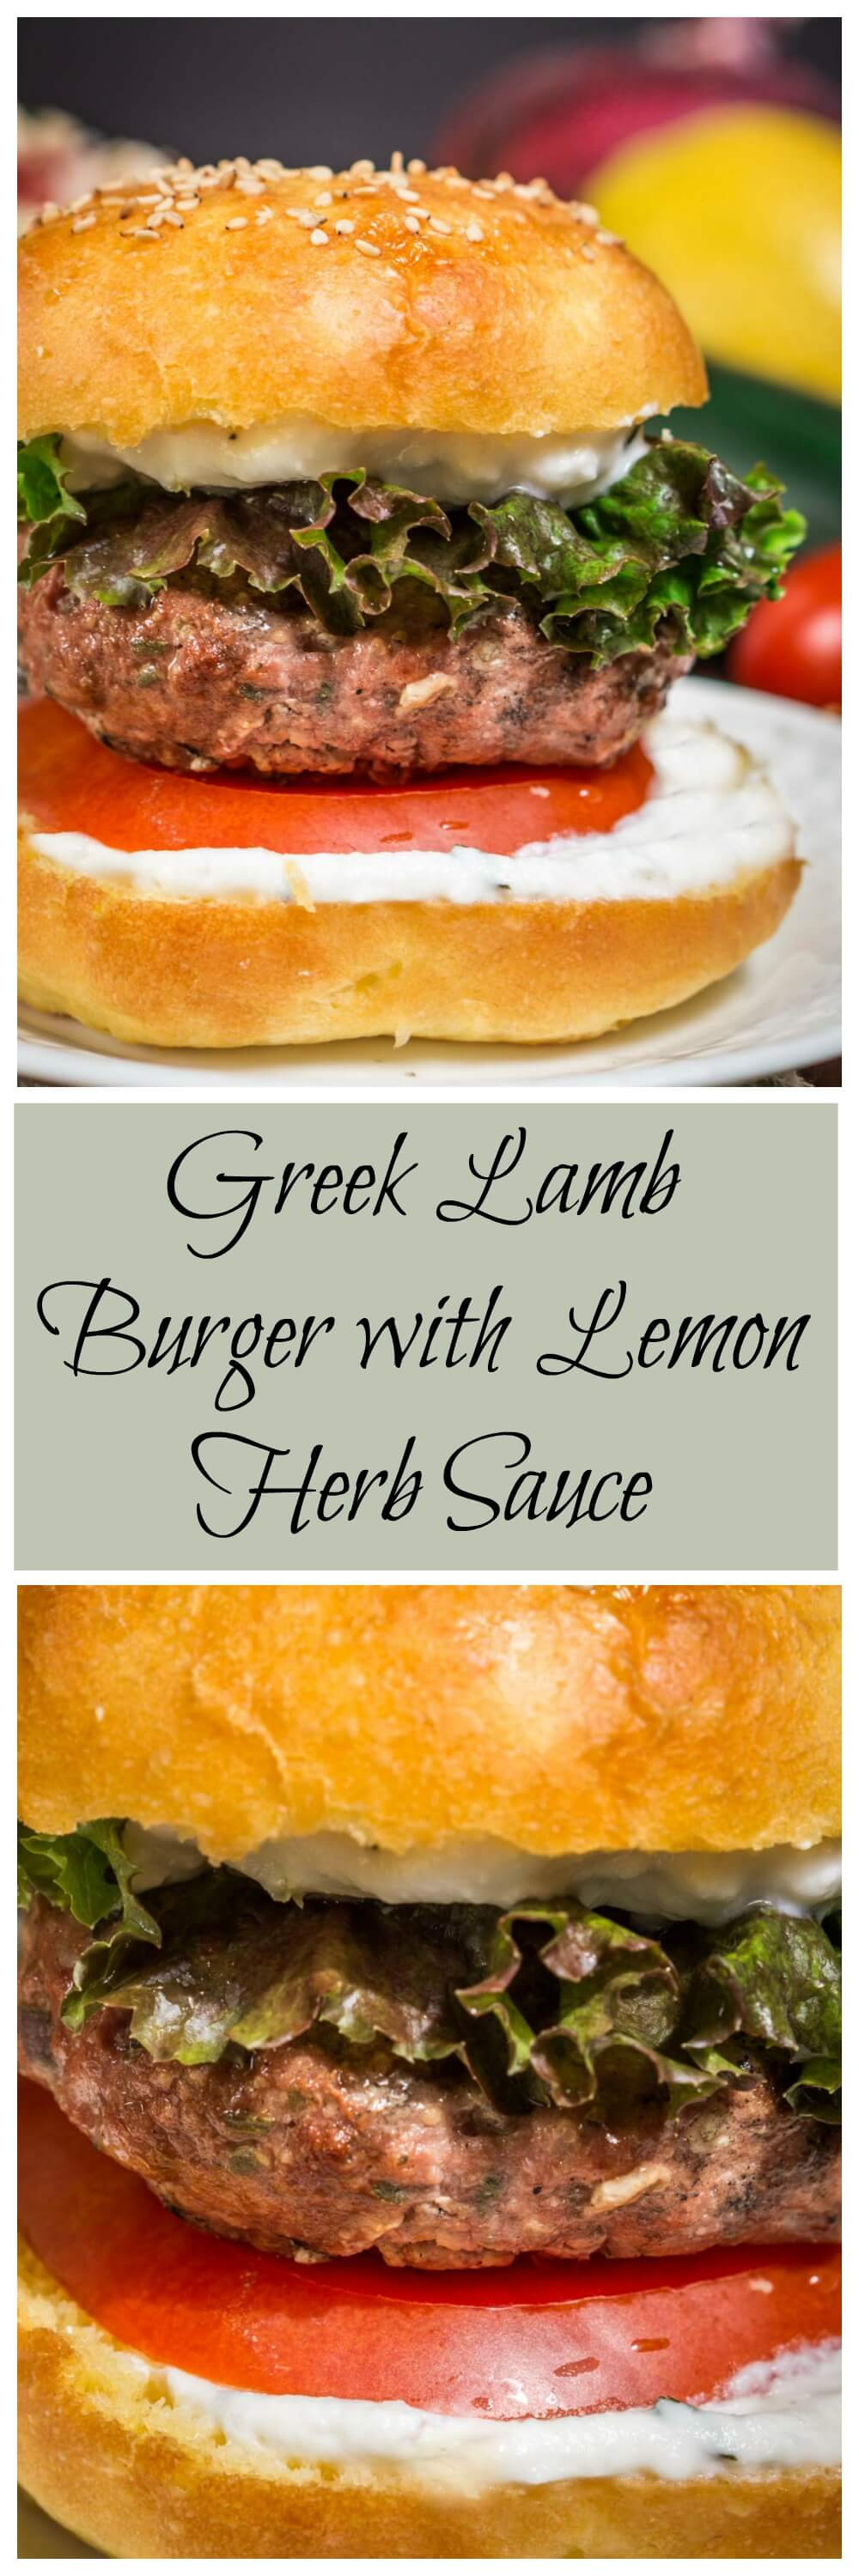 Greek Lamb Burger with Lemon Herb Sauce is one of the best burgers thatI've ever made or eaten. You'll not want to put it down! #lamb_burger #grilling #burger #lamb #HealthyEating | Healthy Dinner | Clean Eating